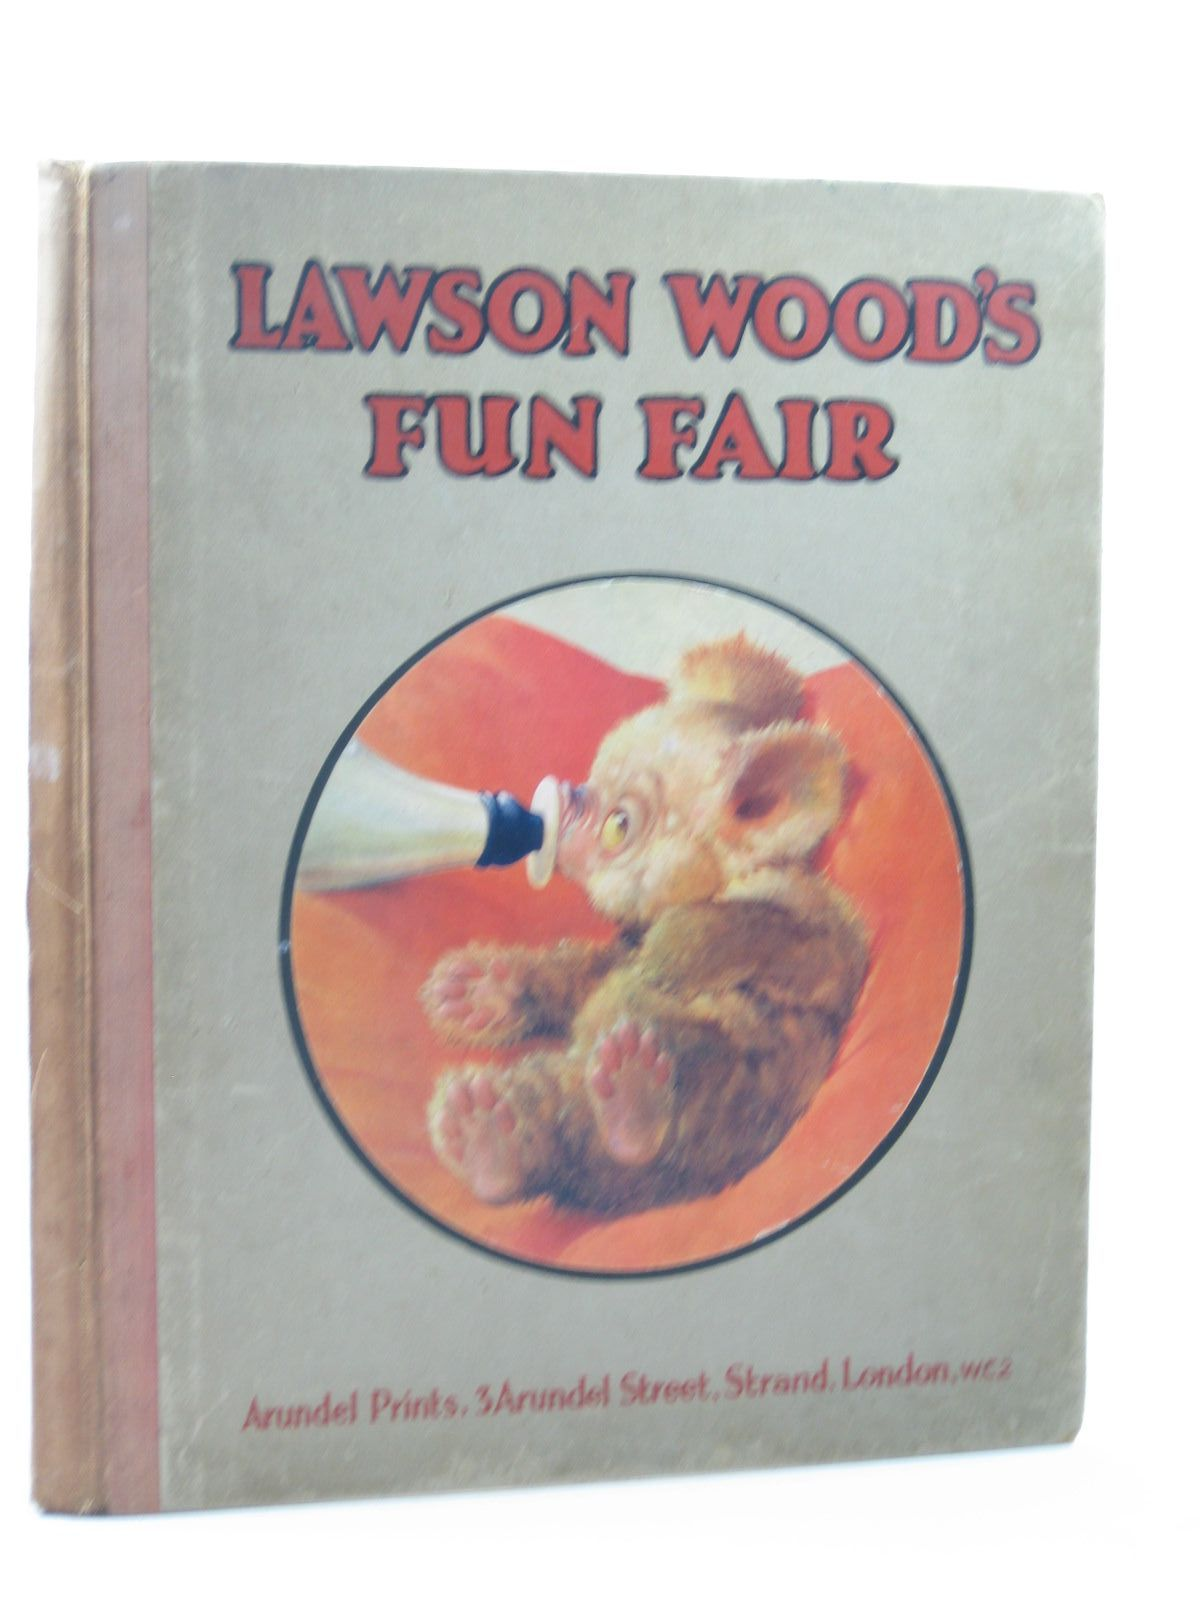 Photo of LAWSON WOOD'S FUN FAIR written by Wood, Lawson illustrated by Wood, Lawson published by Arundel Prints (STOCK CODE: 1312771)  for sale by Stella & Rose's Books